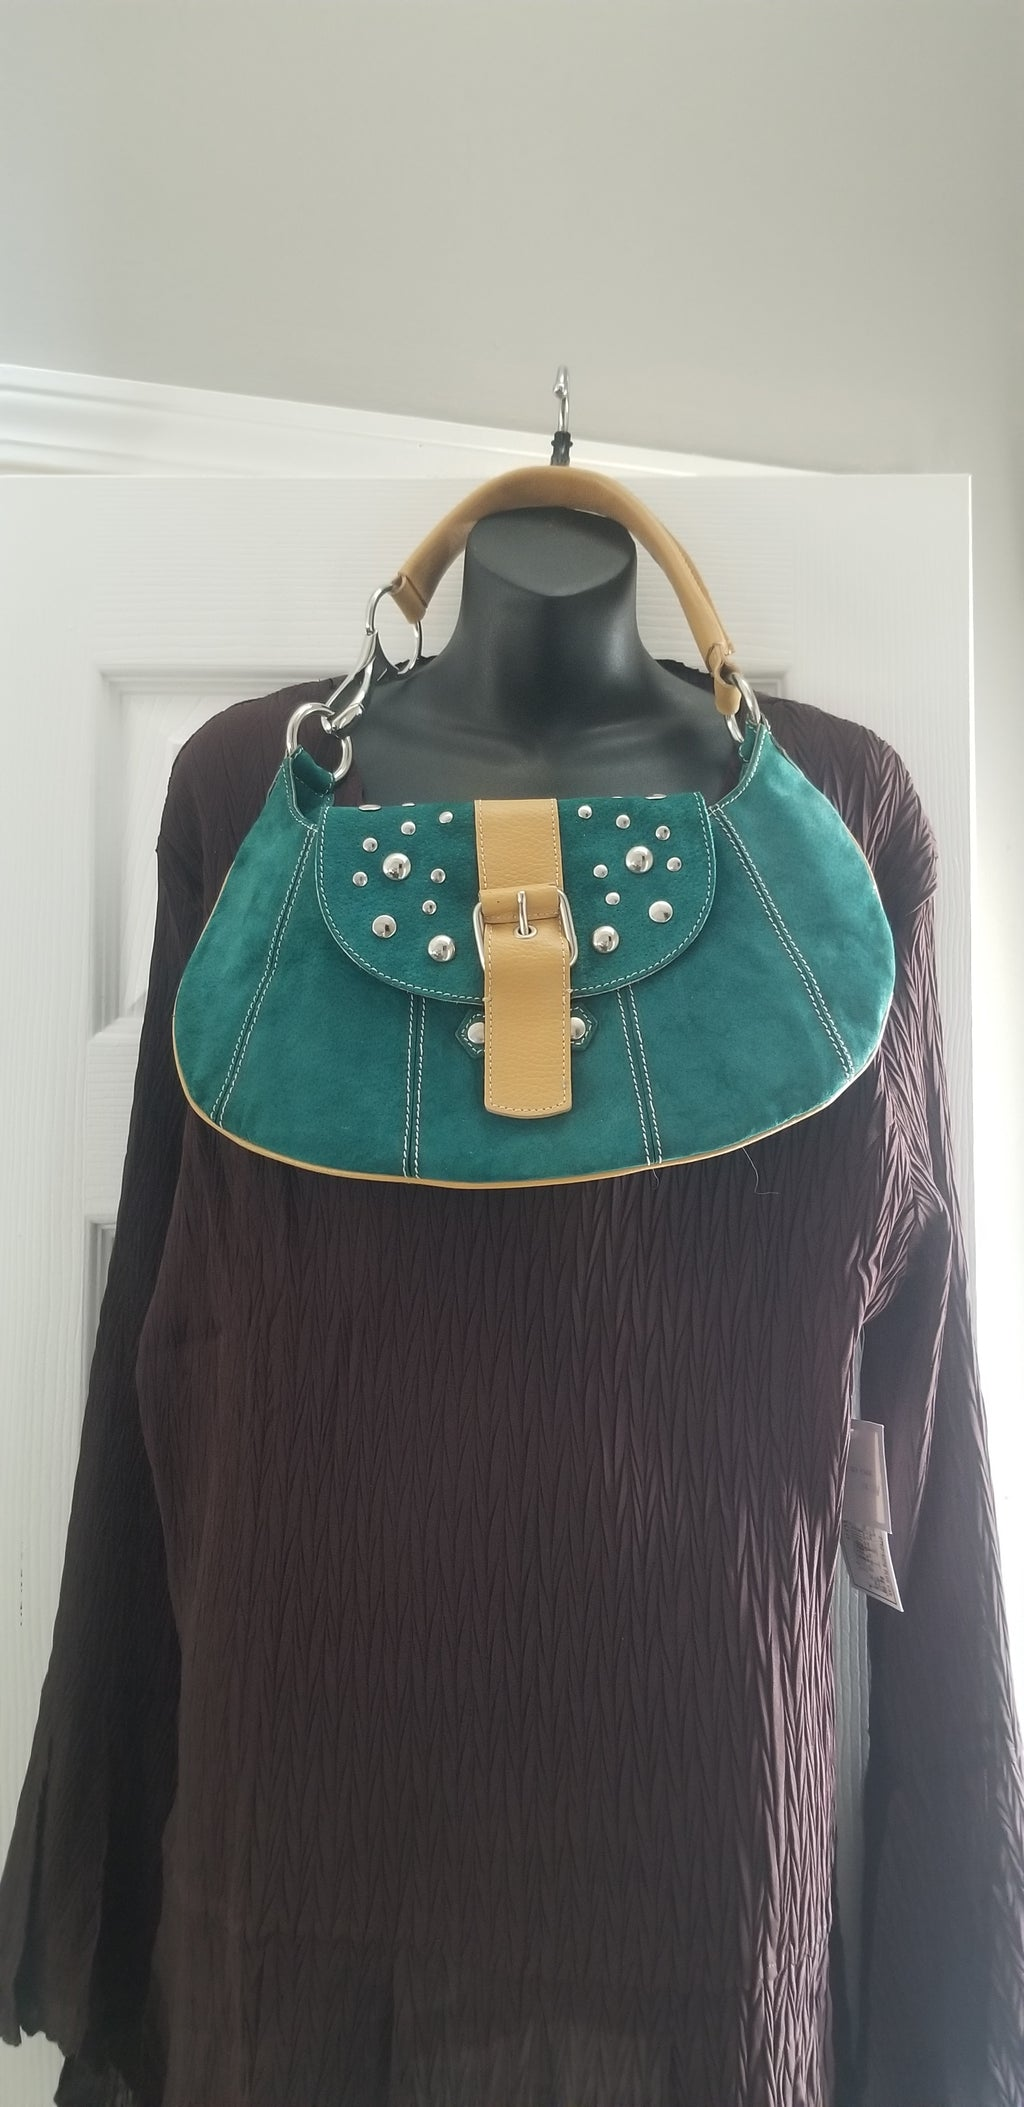 Paravidino women's handbag green suede genuine leather trim hobo